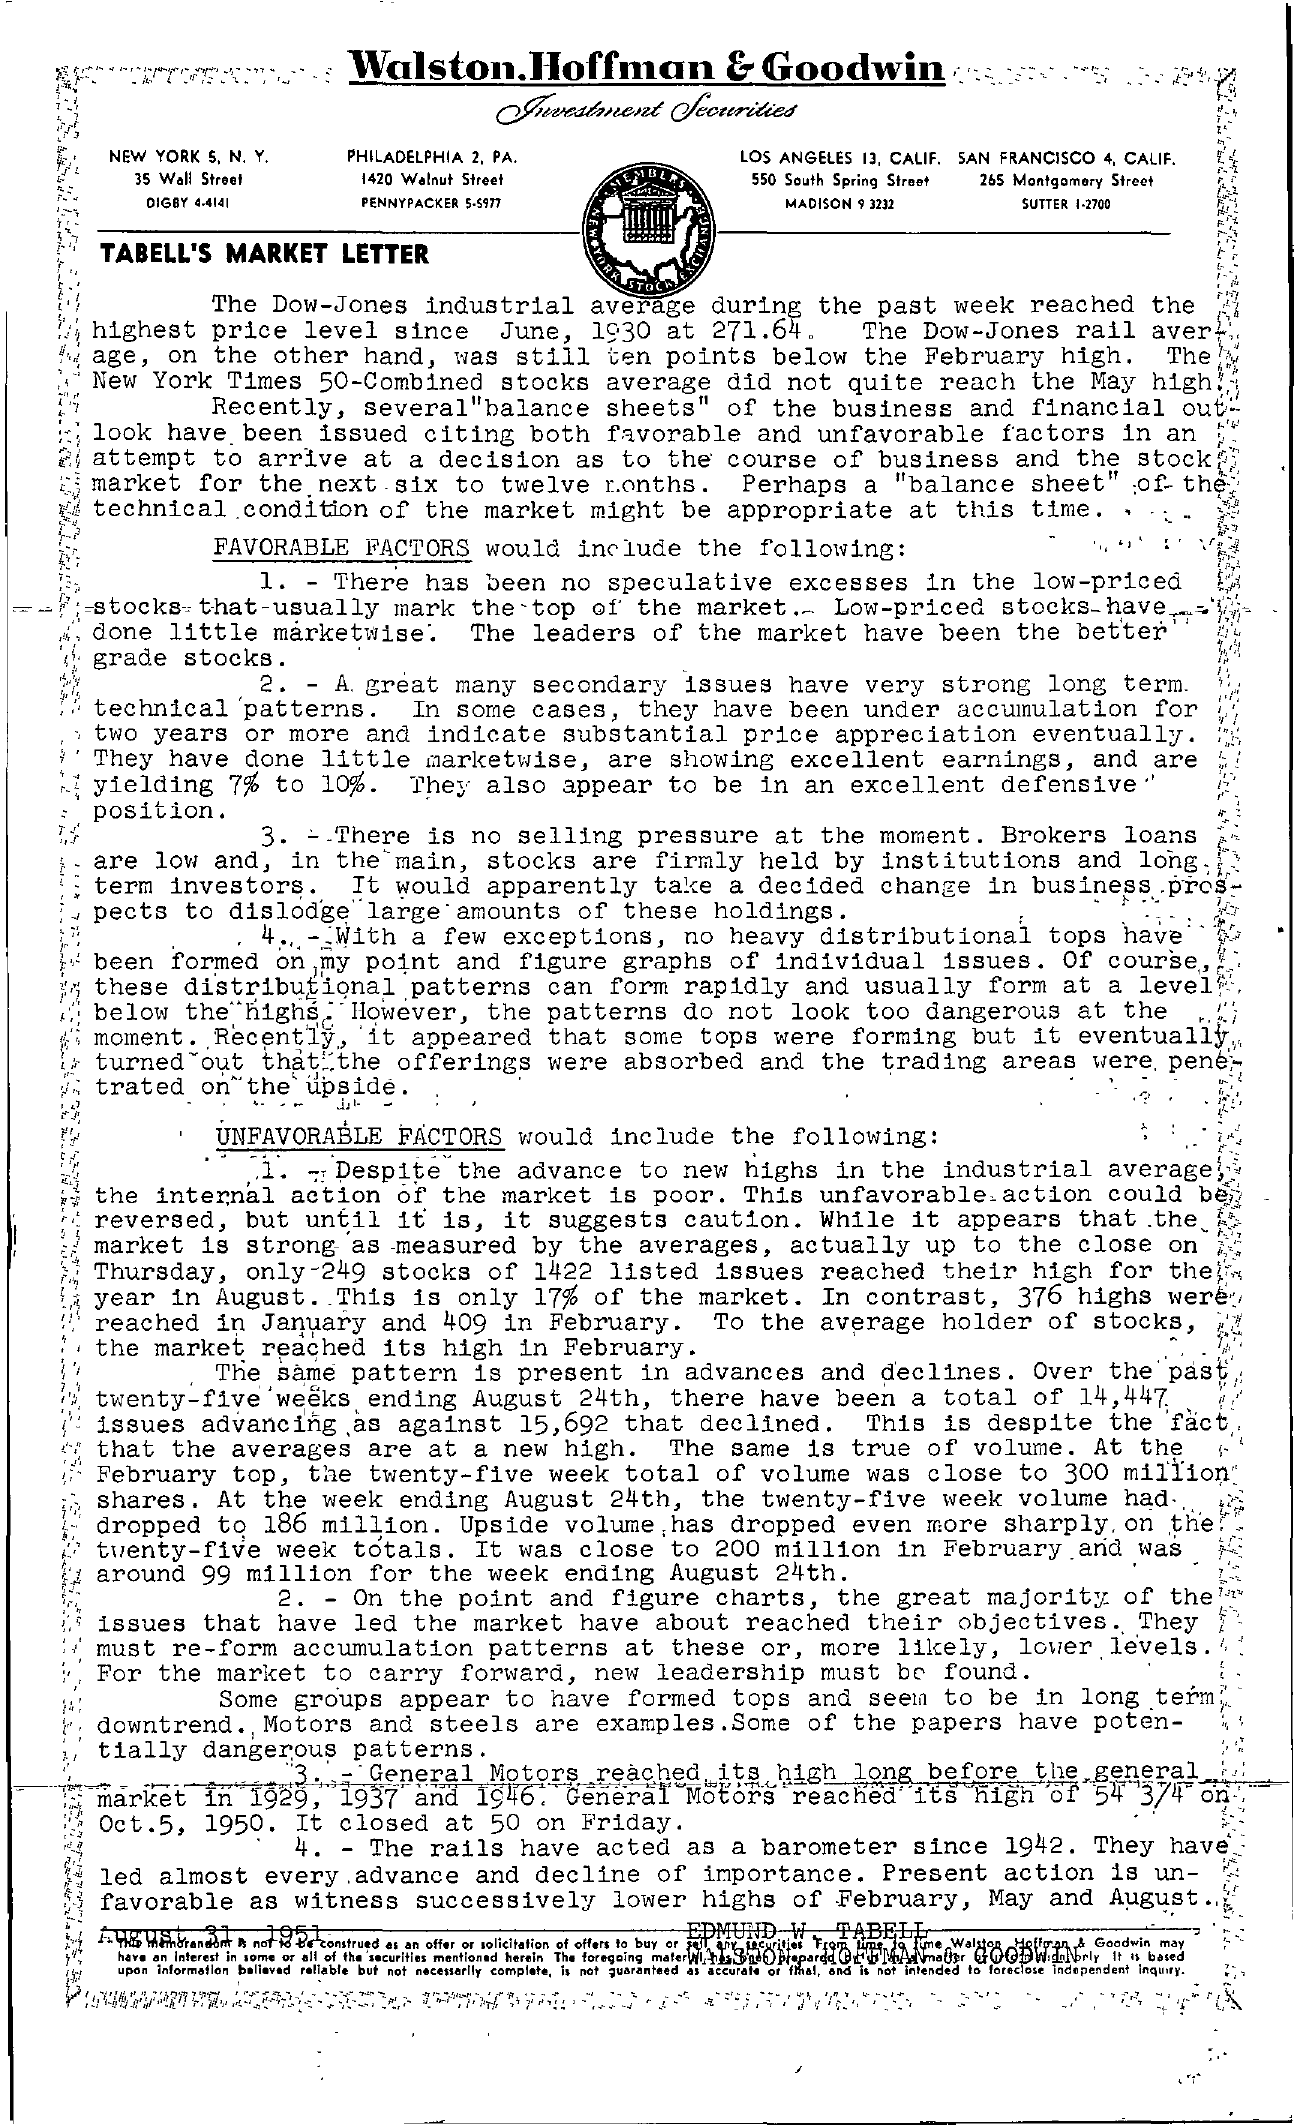 Tabell's Market Letter - August 31, 1951